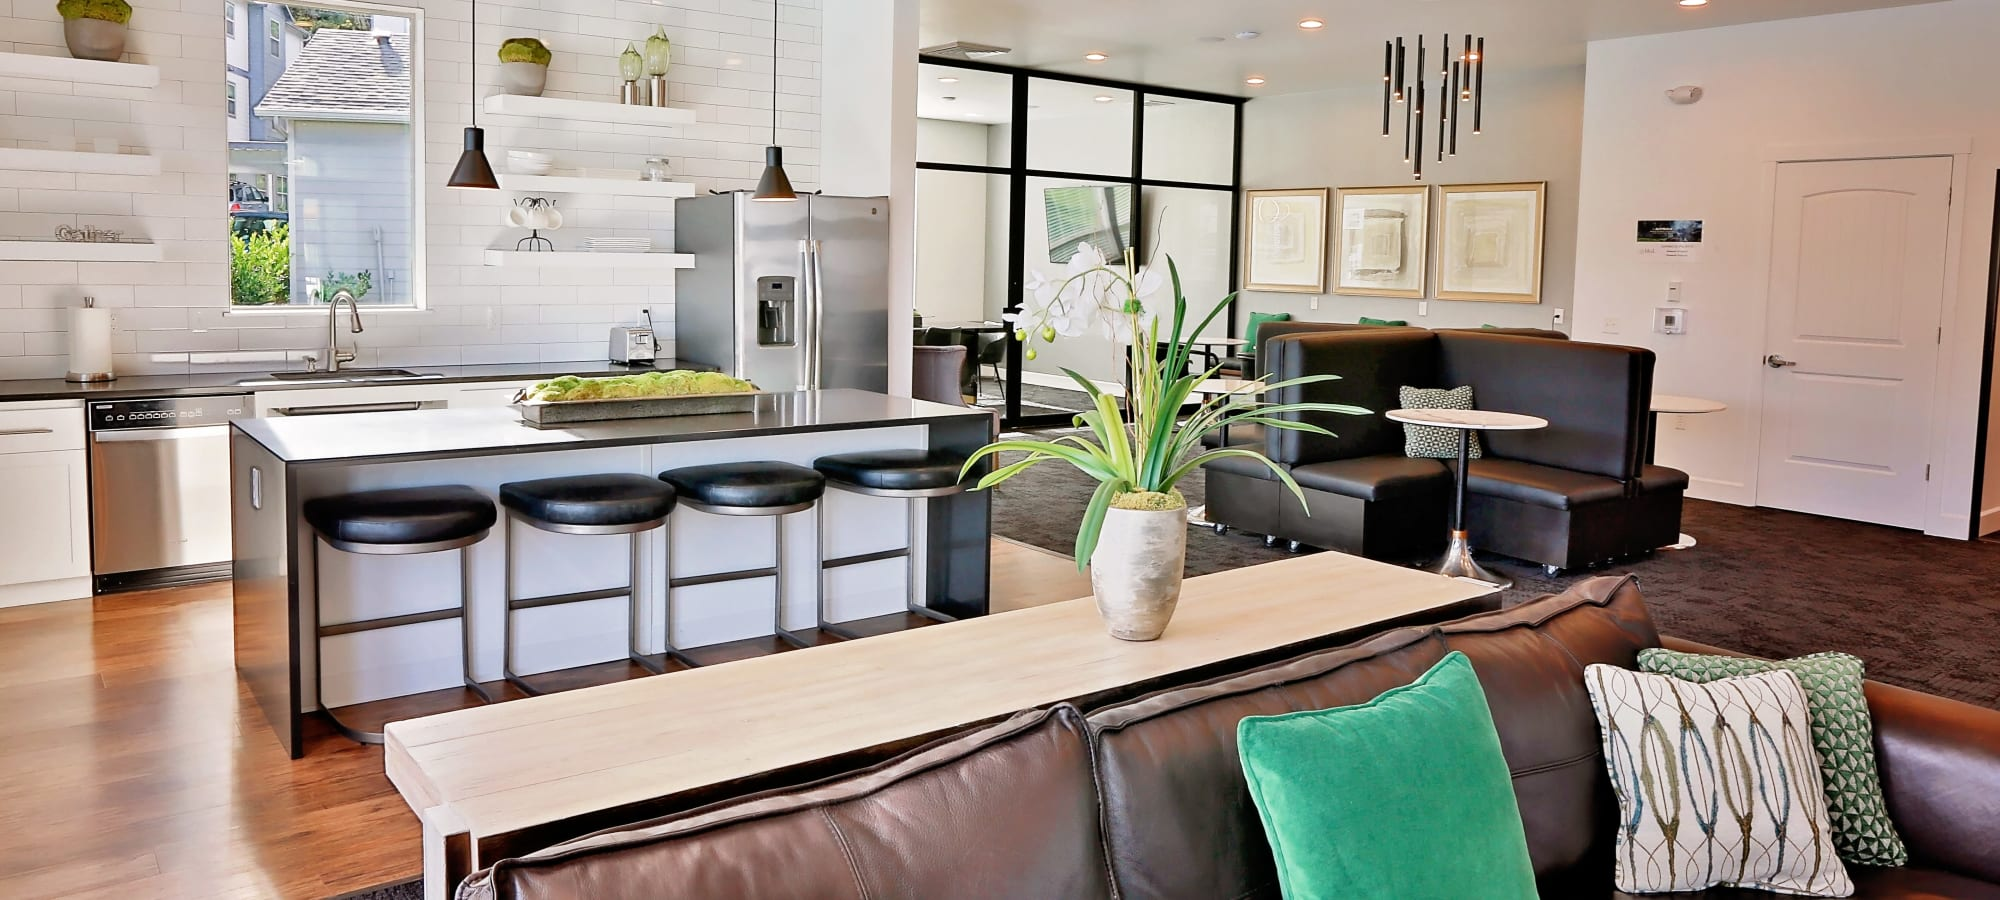 Apartments at The Boulevard in Philomath, Oregon